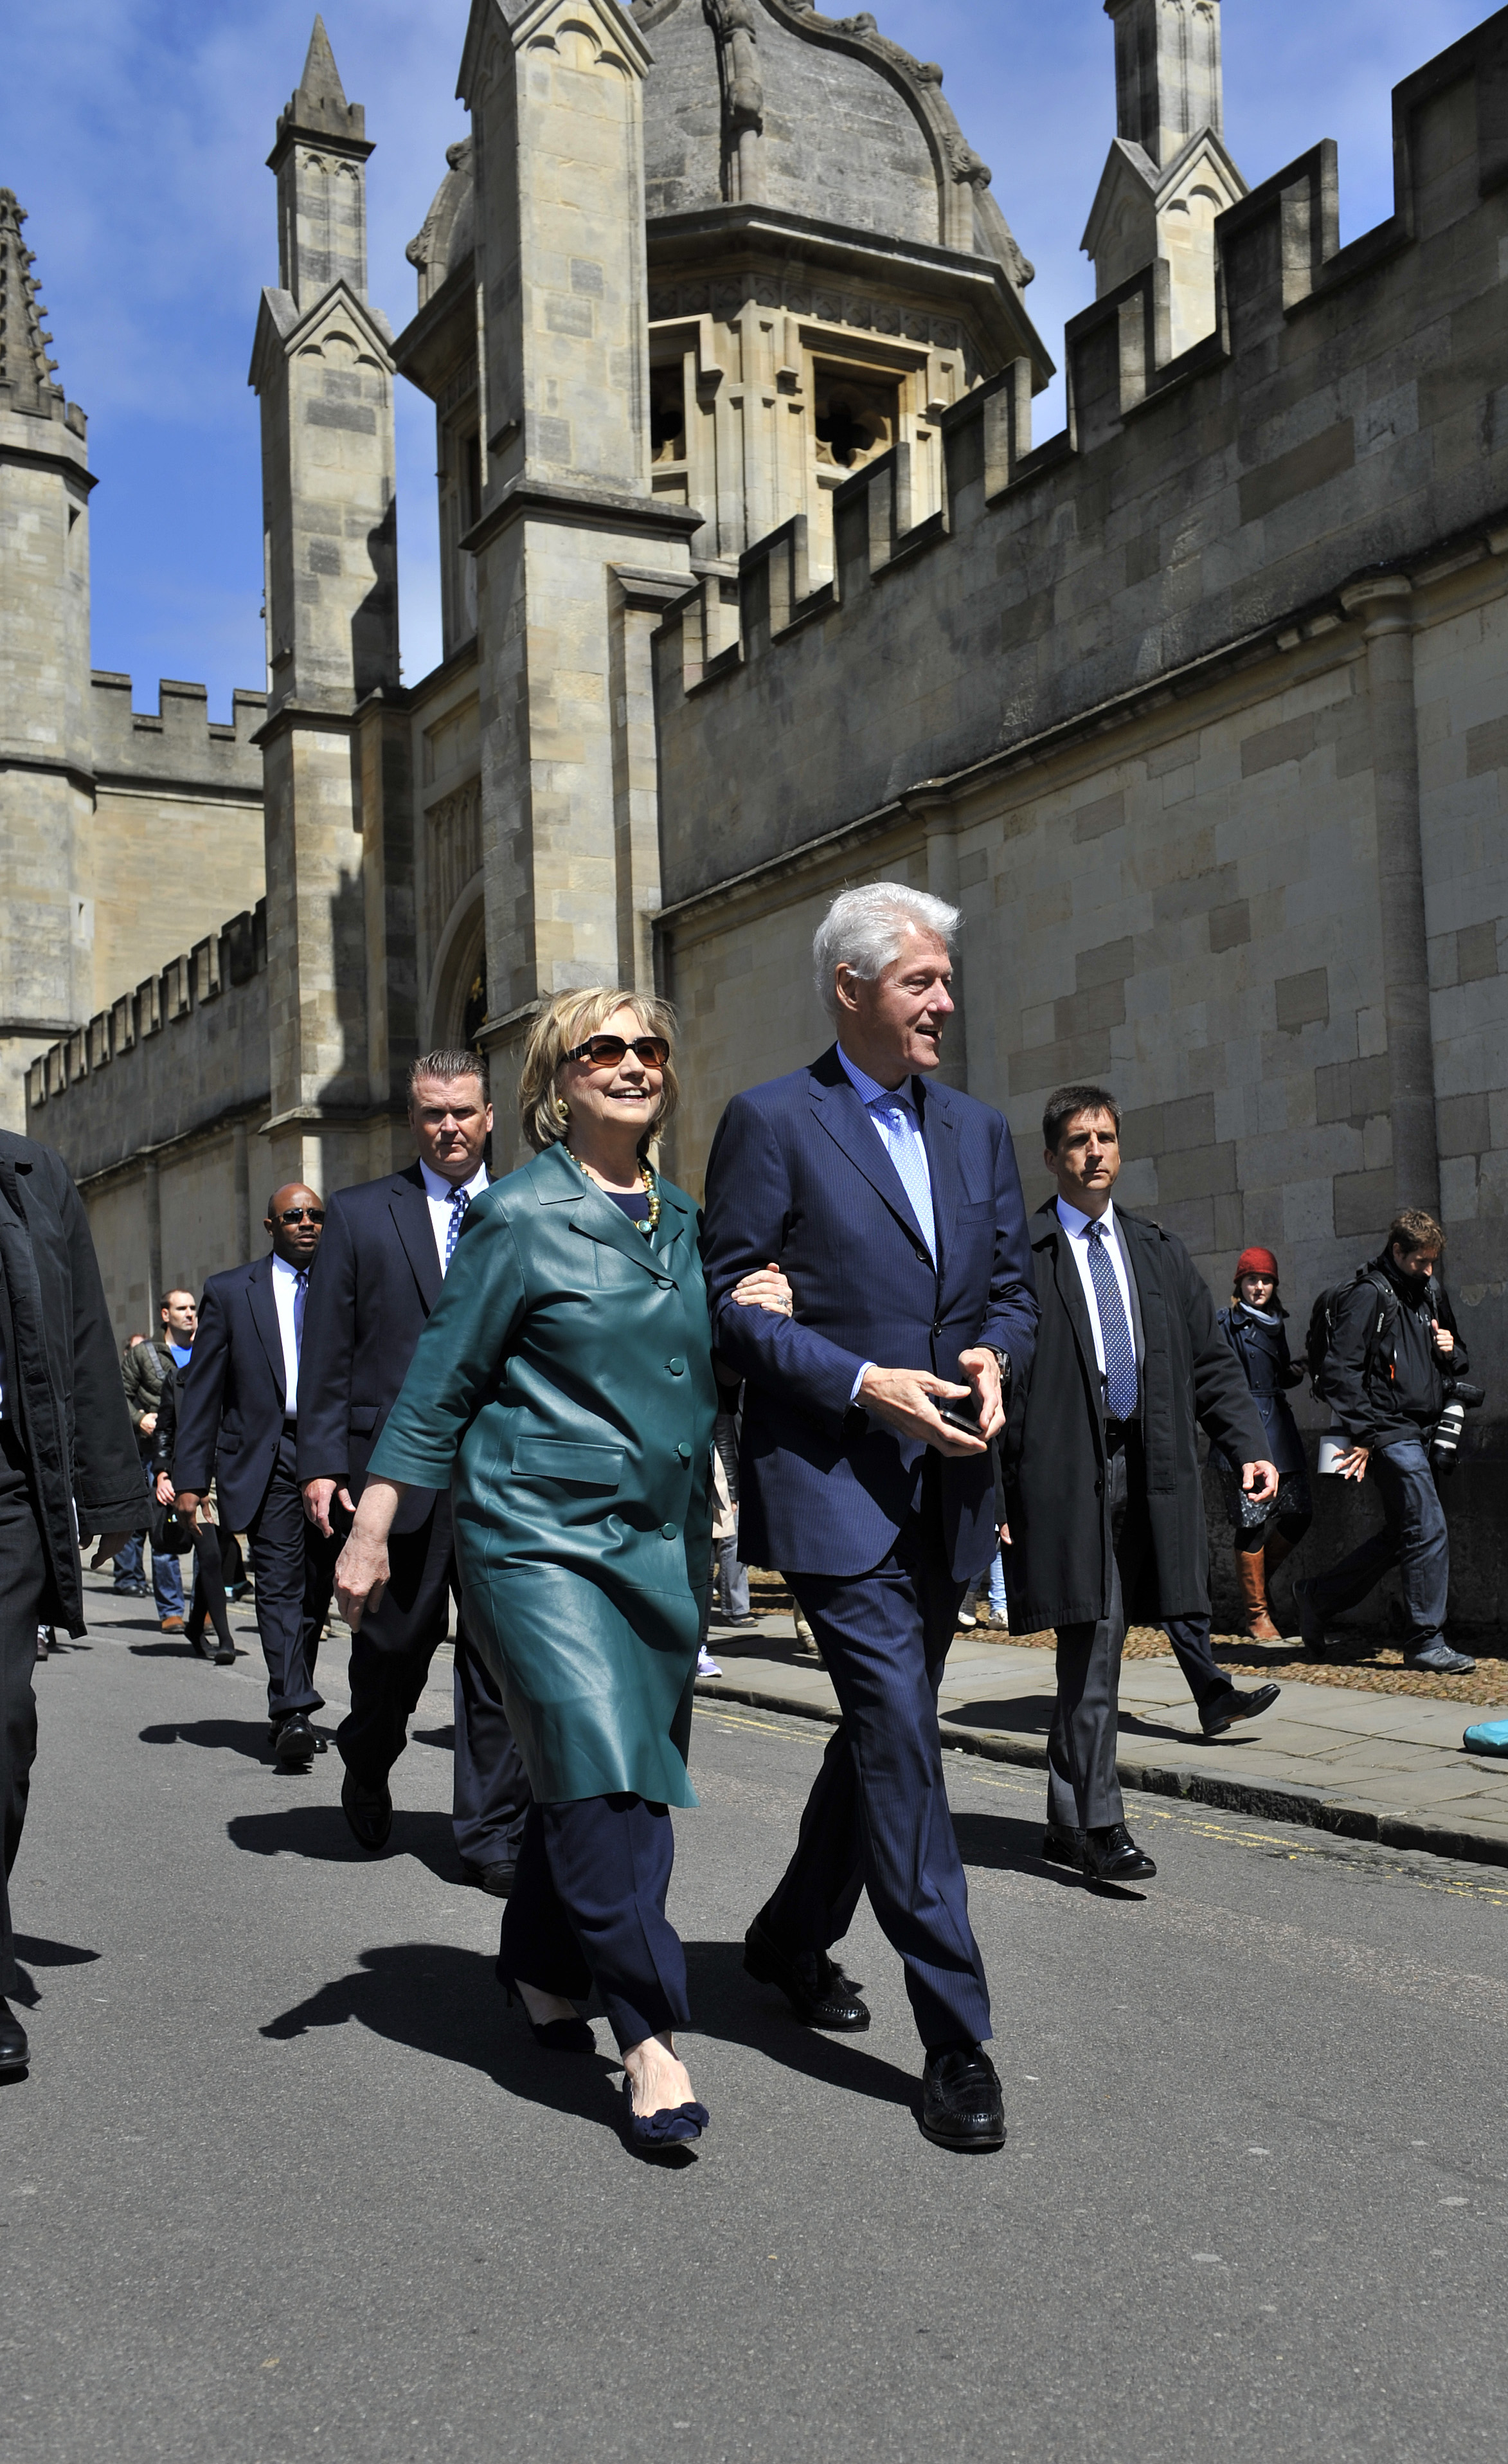 VIPs: Hillary Clinton with former US President Bill Clinton in Oxford in May 2014